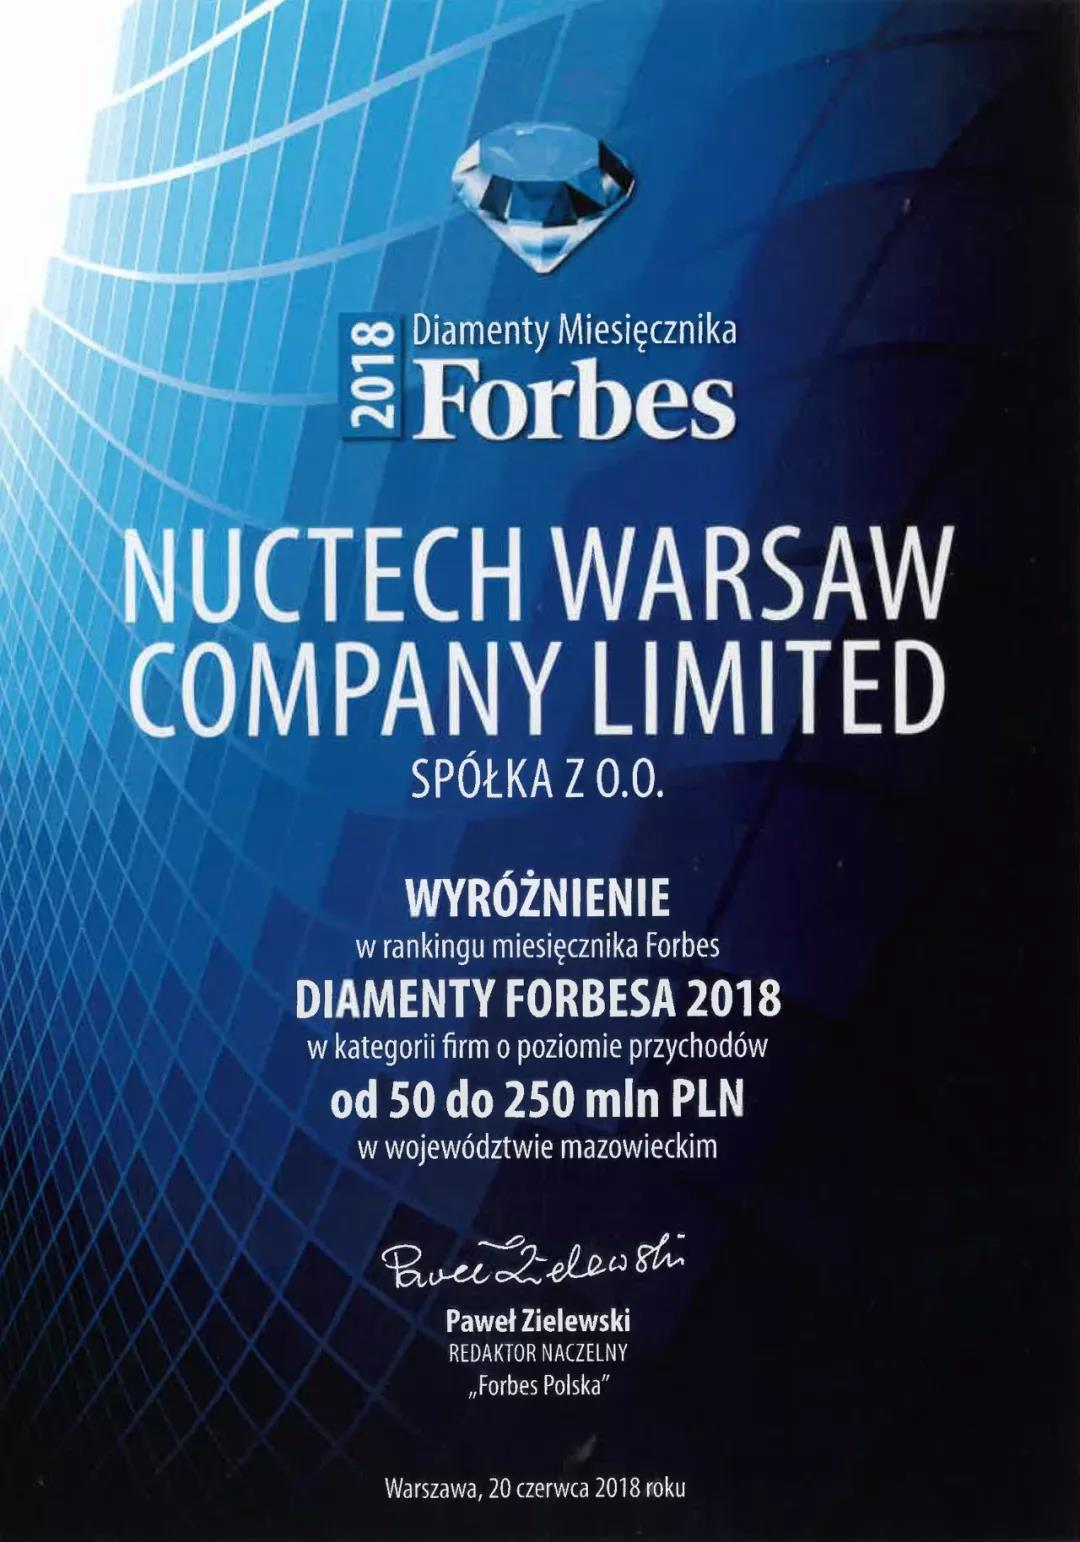 NUCTECH Warsaw Has Received the Forbes Diamonds 2018 Award.